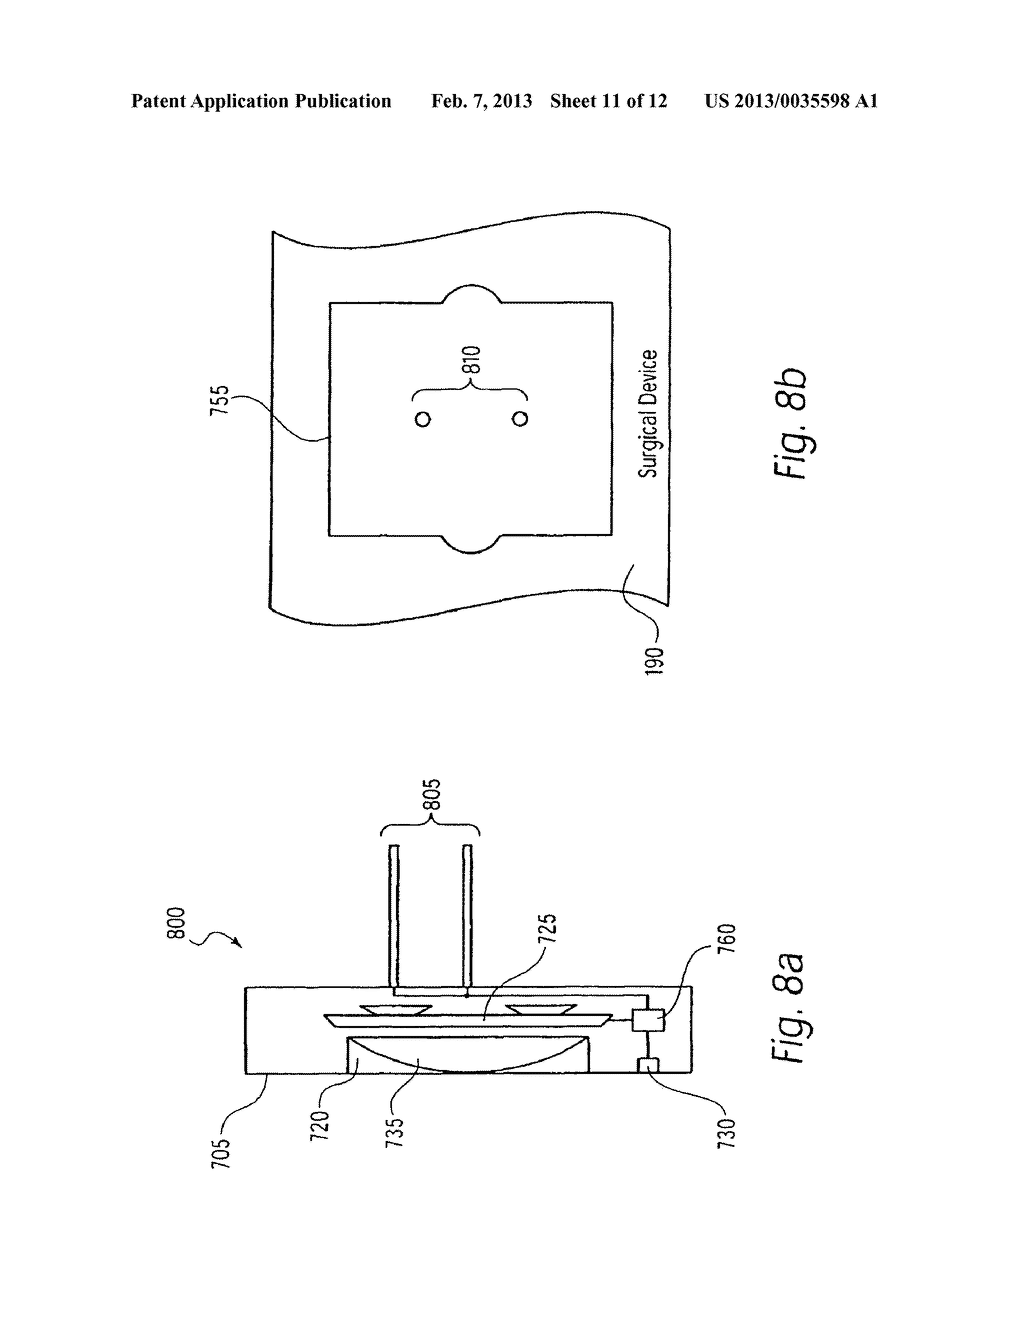 IMAGING DEVICE FOR USE WITH A SURGICAL DEVICE - diagram, schematic, and image 12